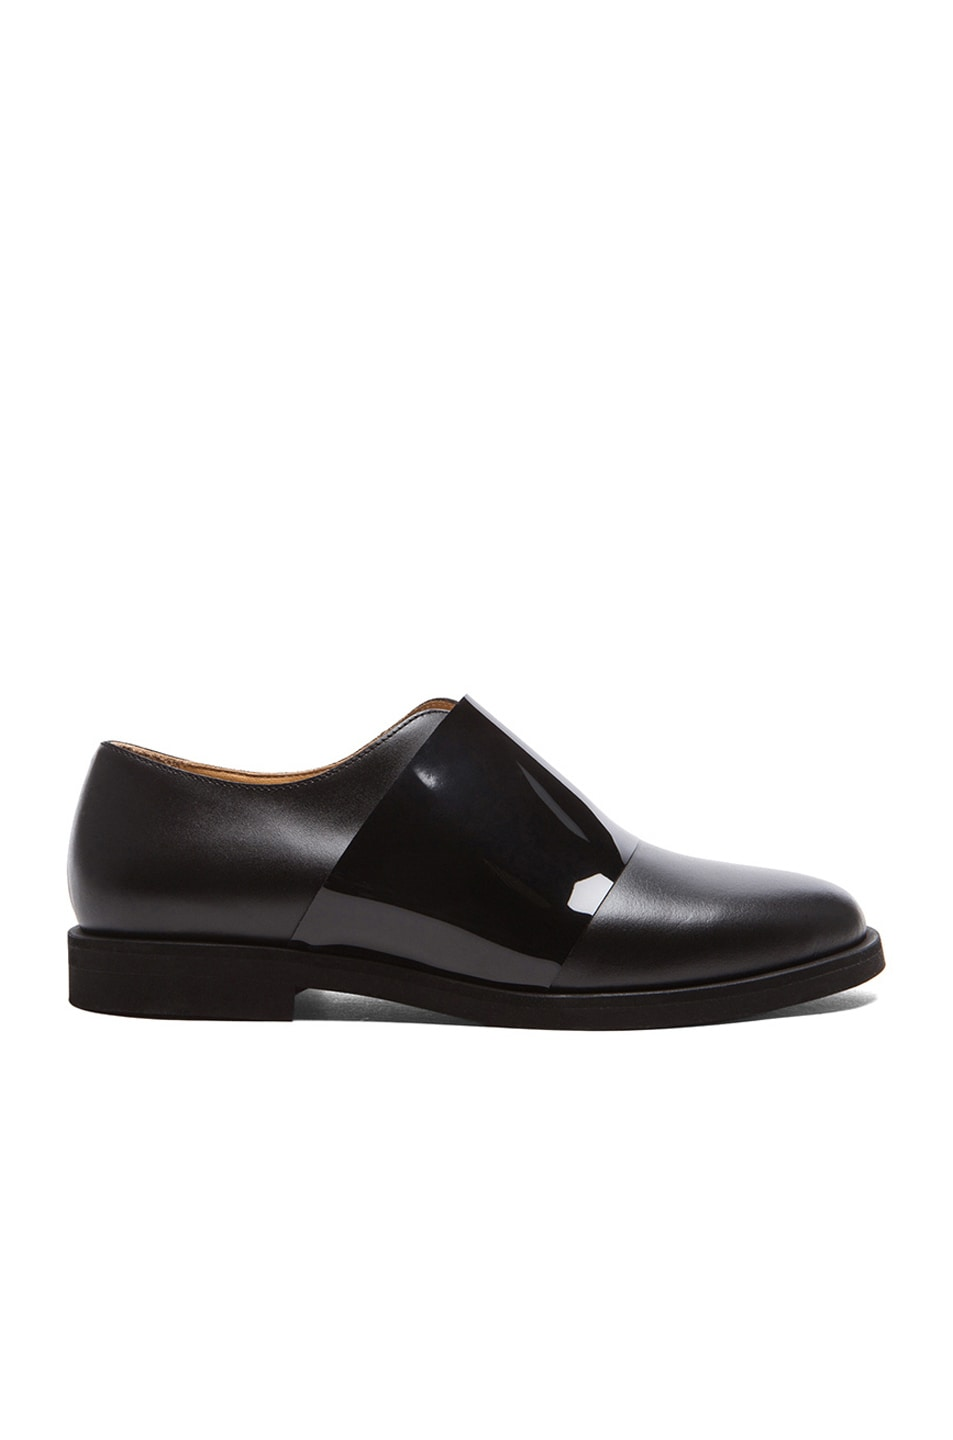 Image 1 of MM6 Maison Margiela Leather Oxfords in Black